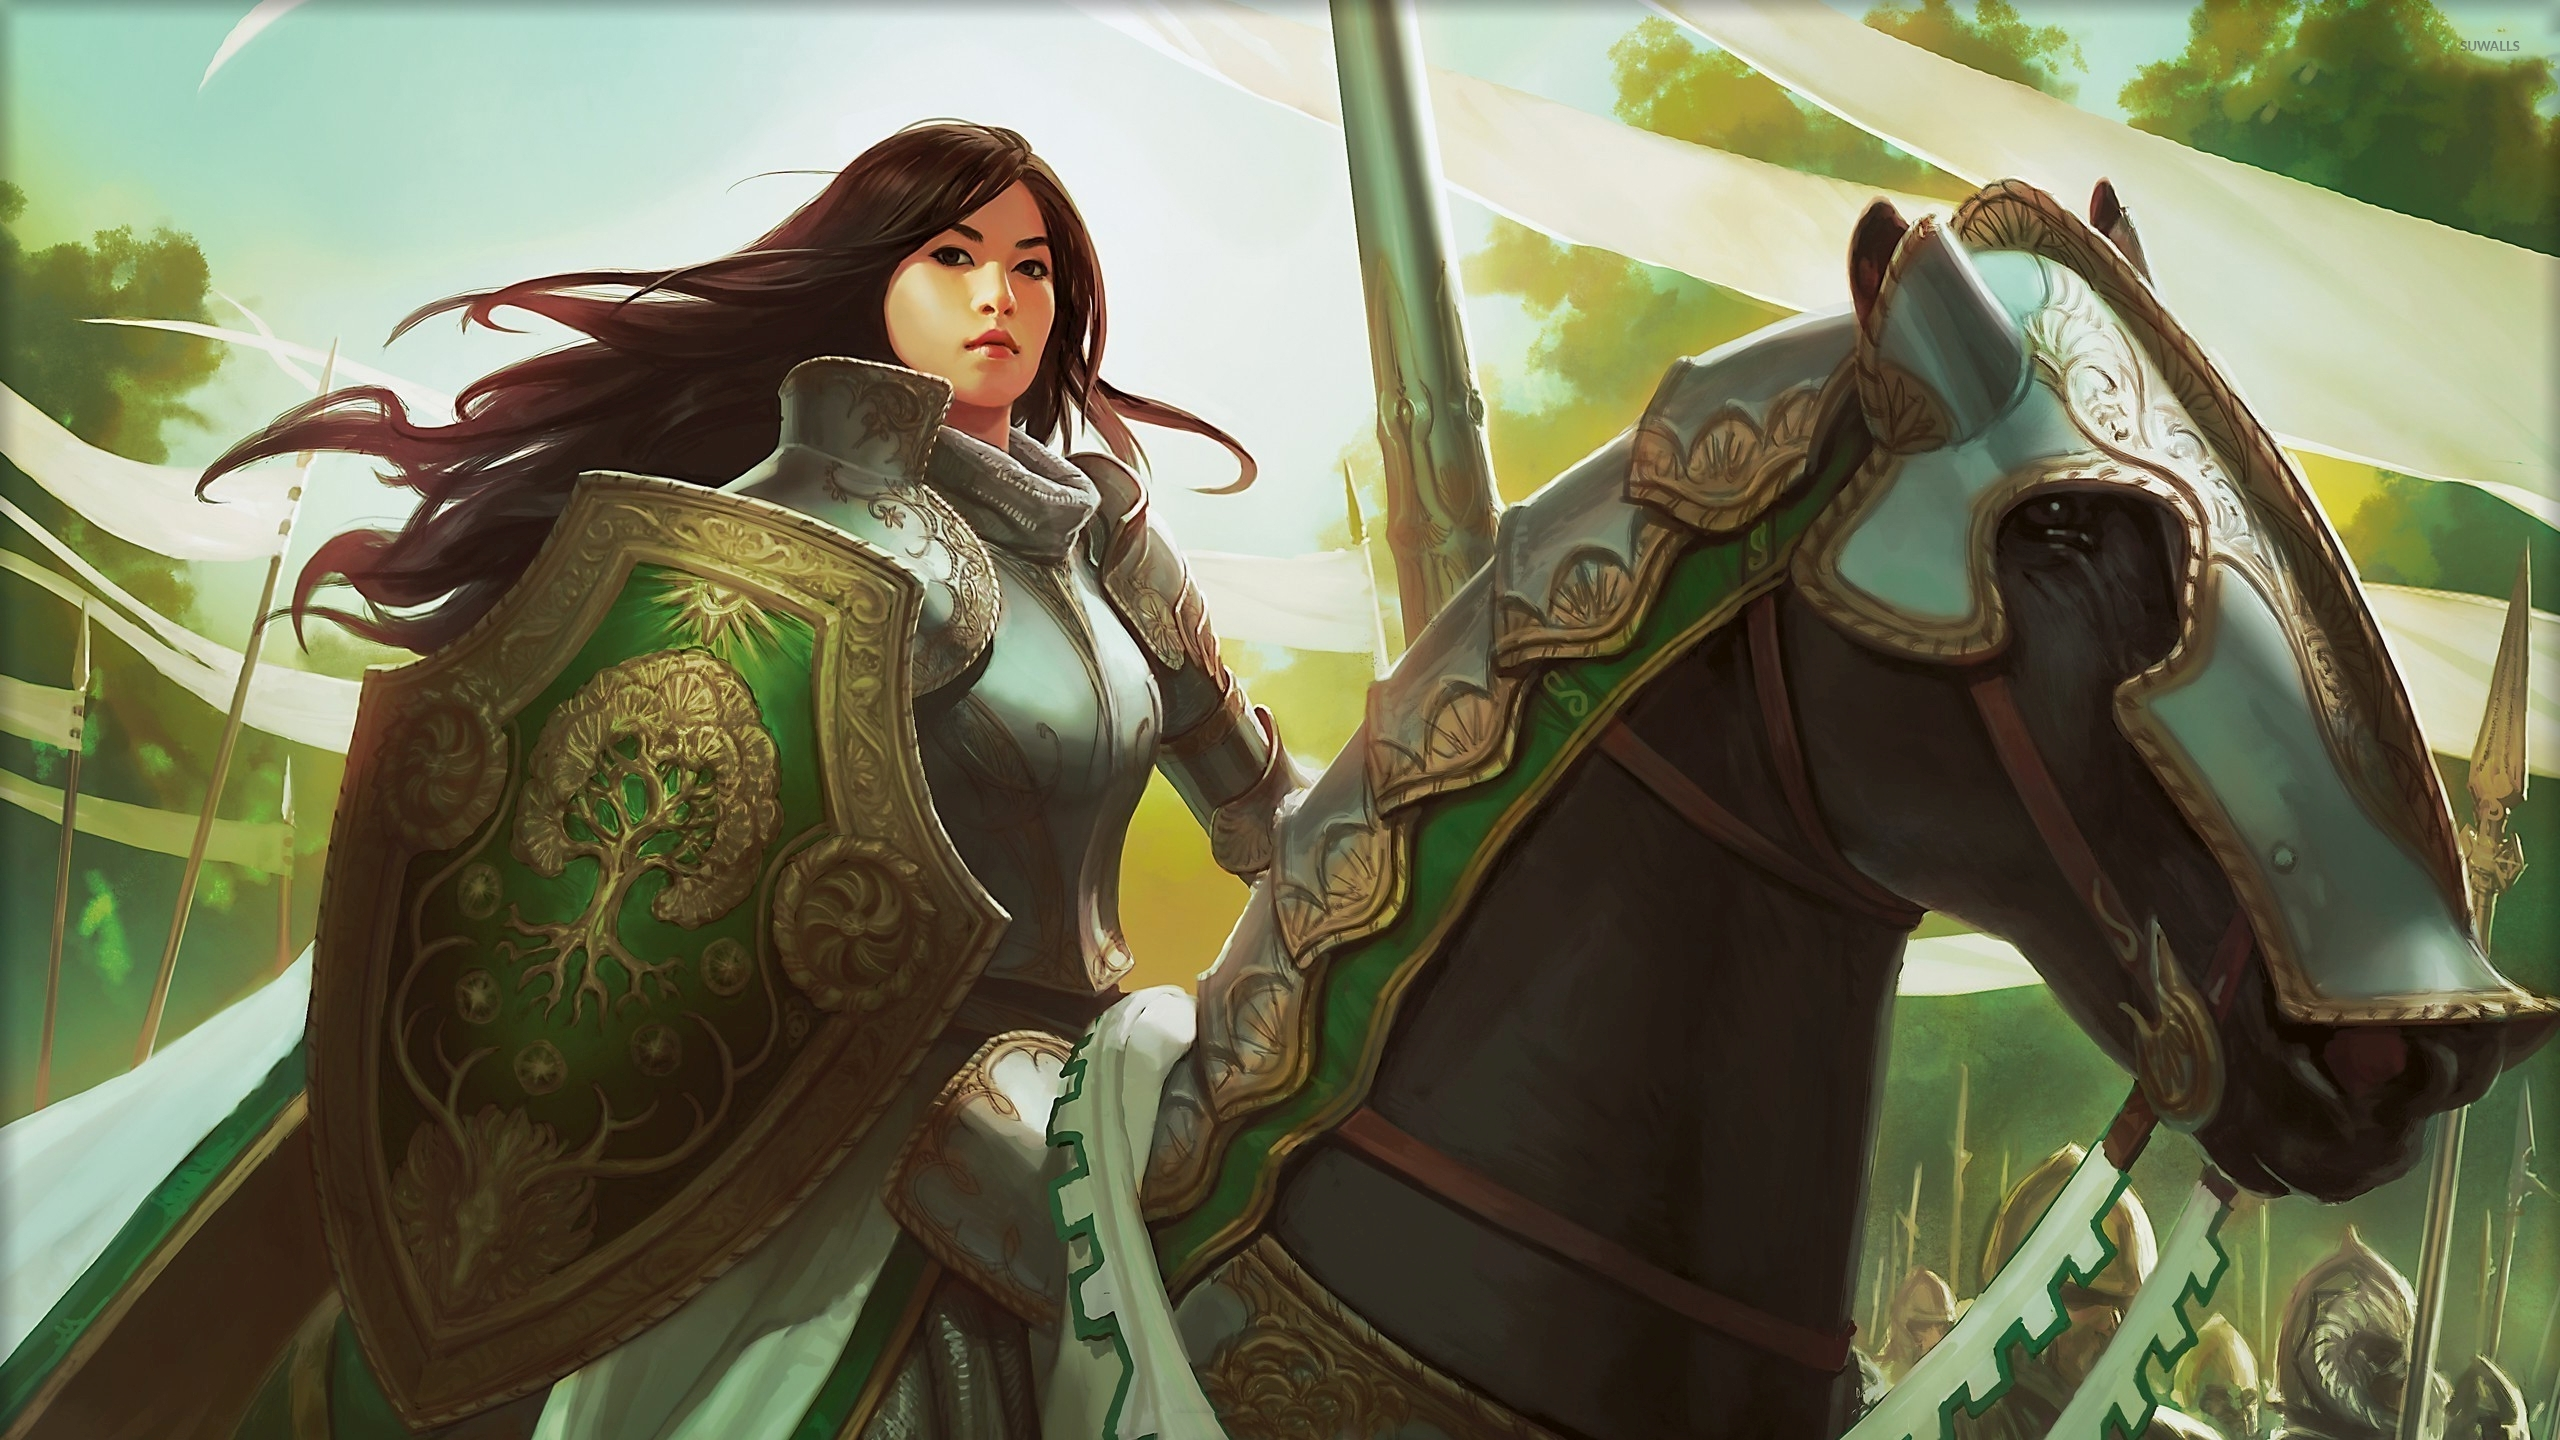 40k Quotes Wallpapers Knight Exemplar Magic The Gathering Wallpaper Game